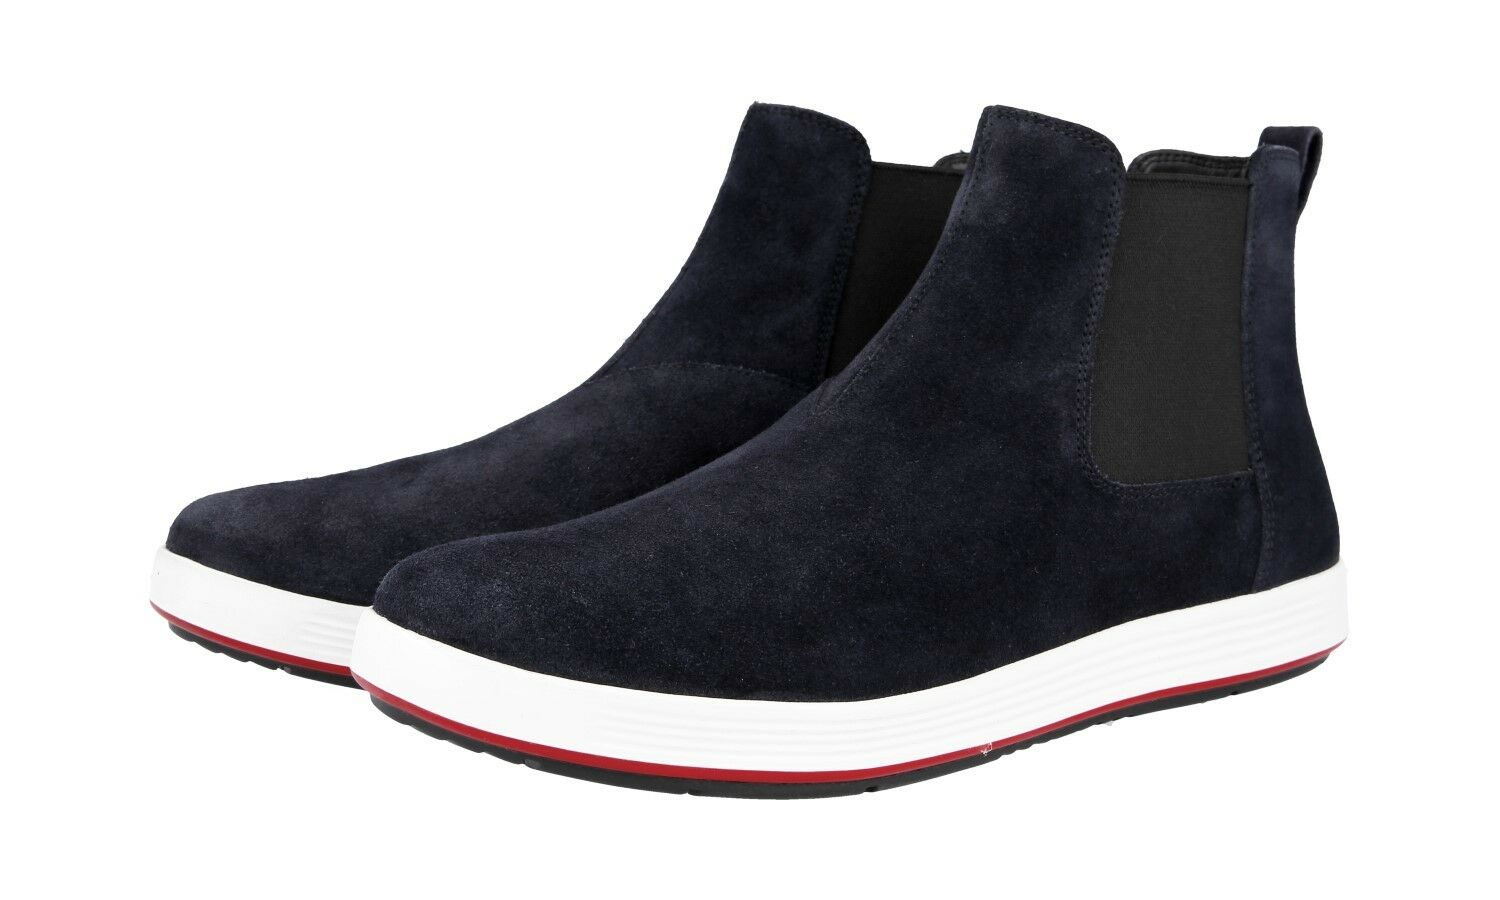 AUTH LUXURY PRADA HALF-BOOT SHOES 4T3153 blueE SUEDE NEW US 11.5 EU 44,5 45